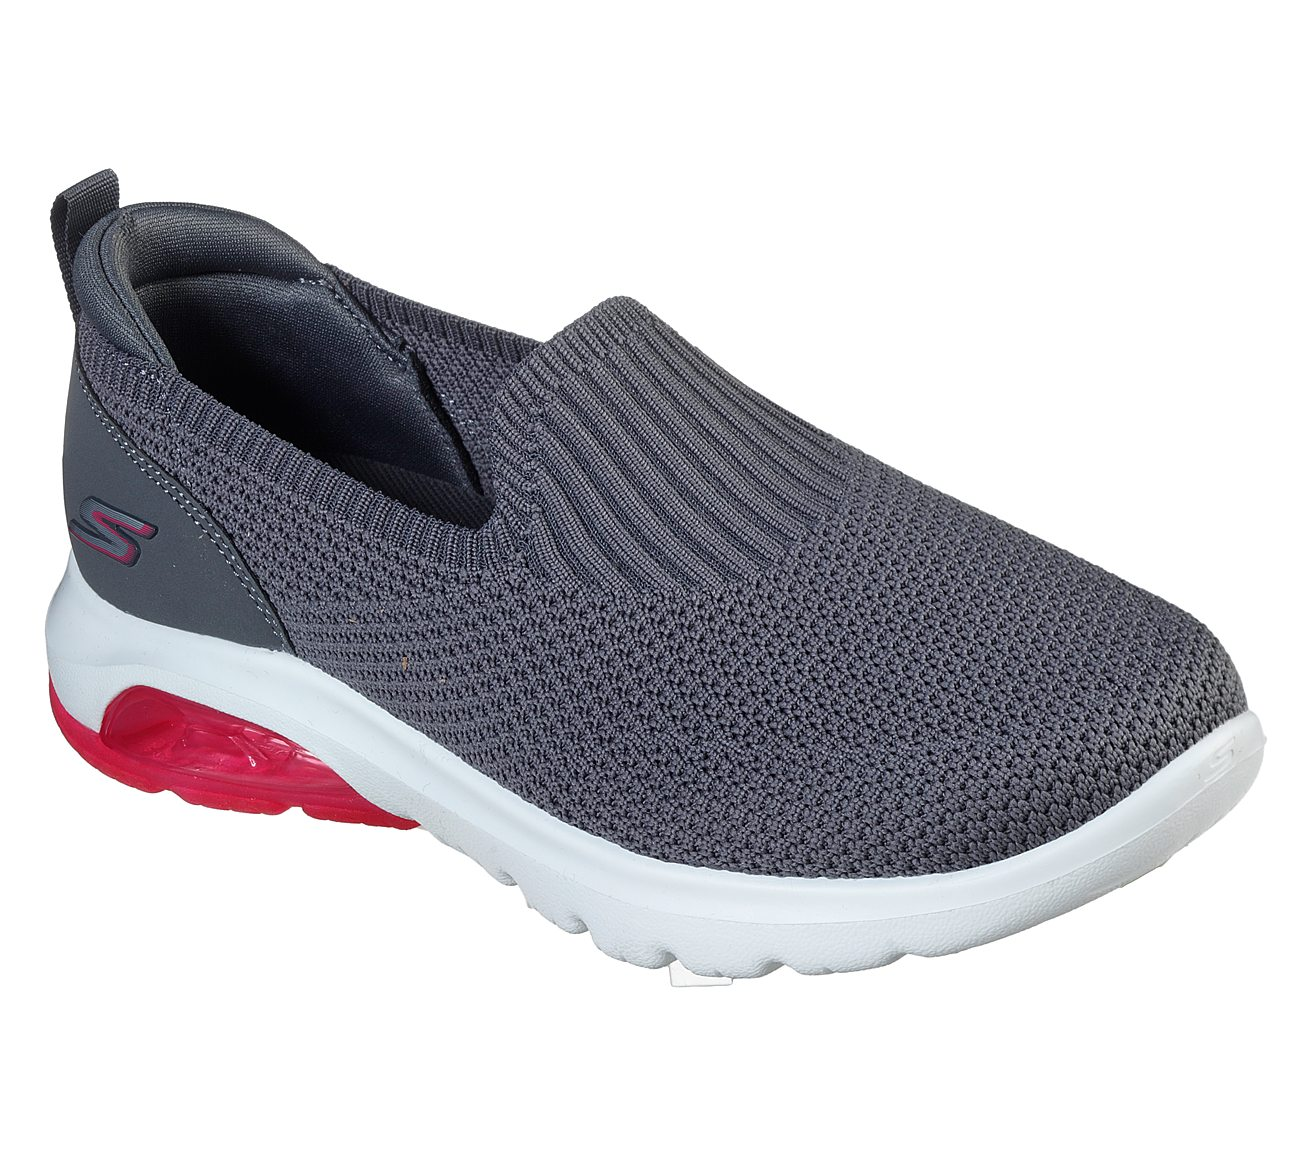 skechers go walk on sale